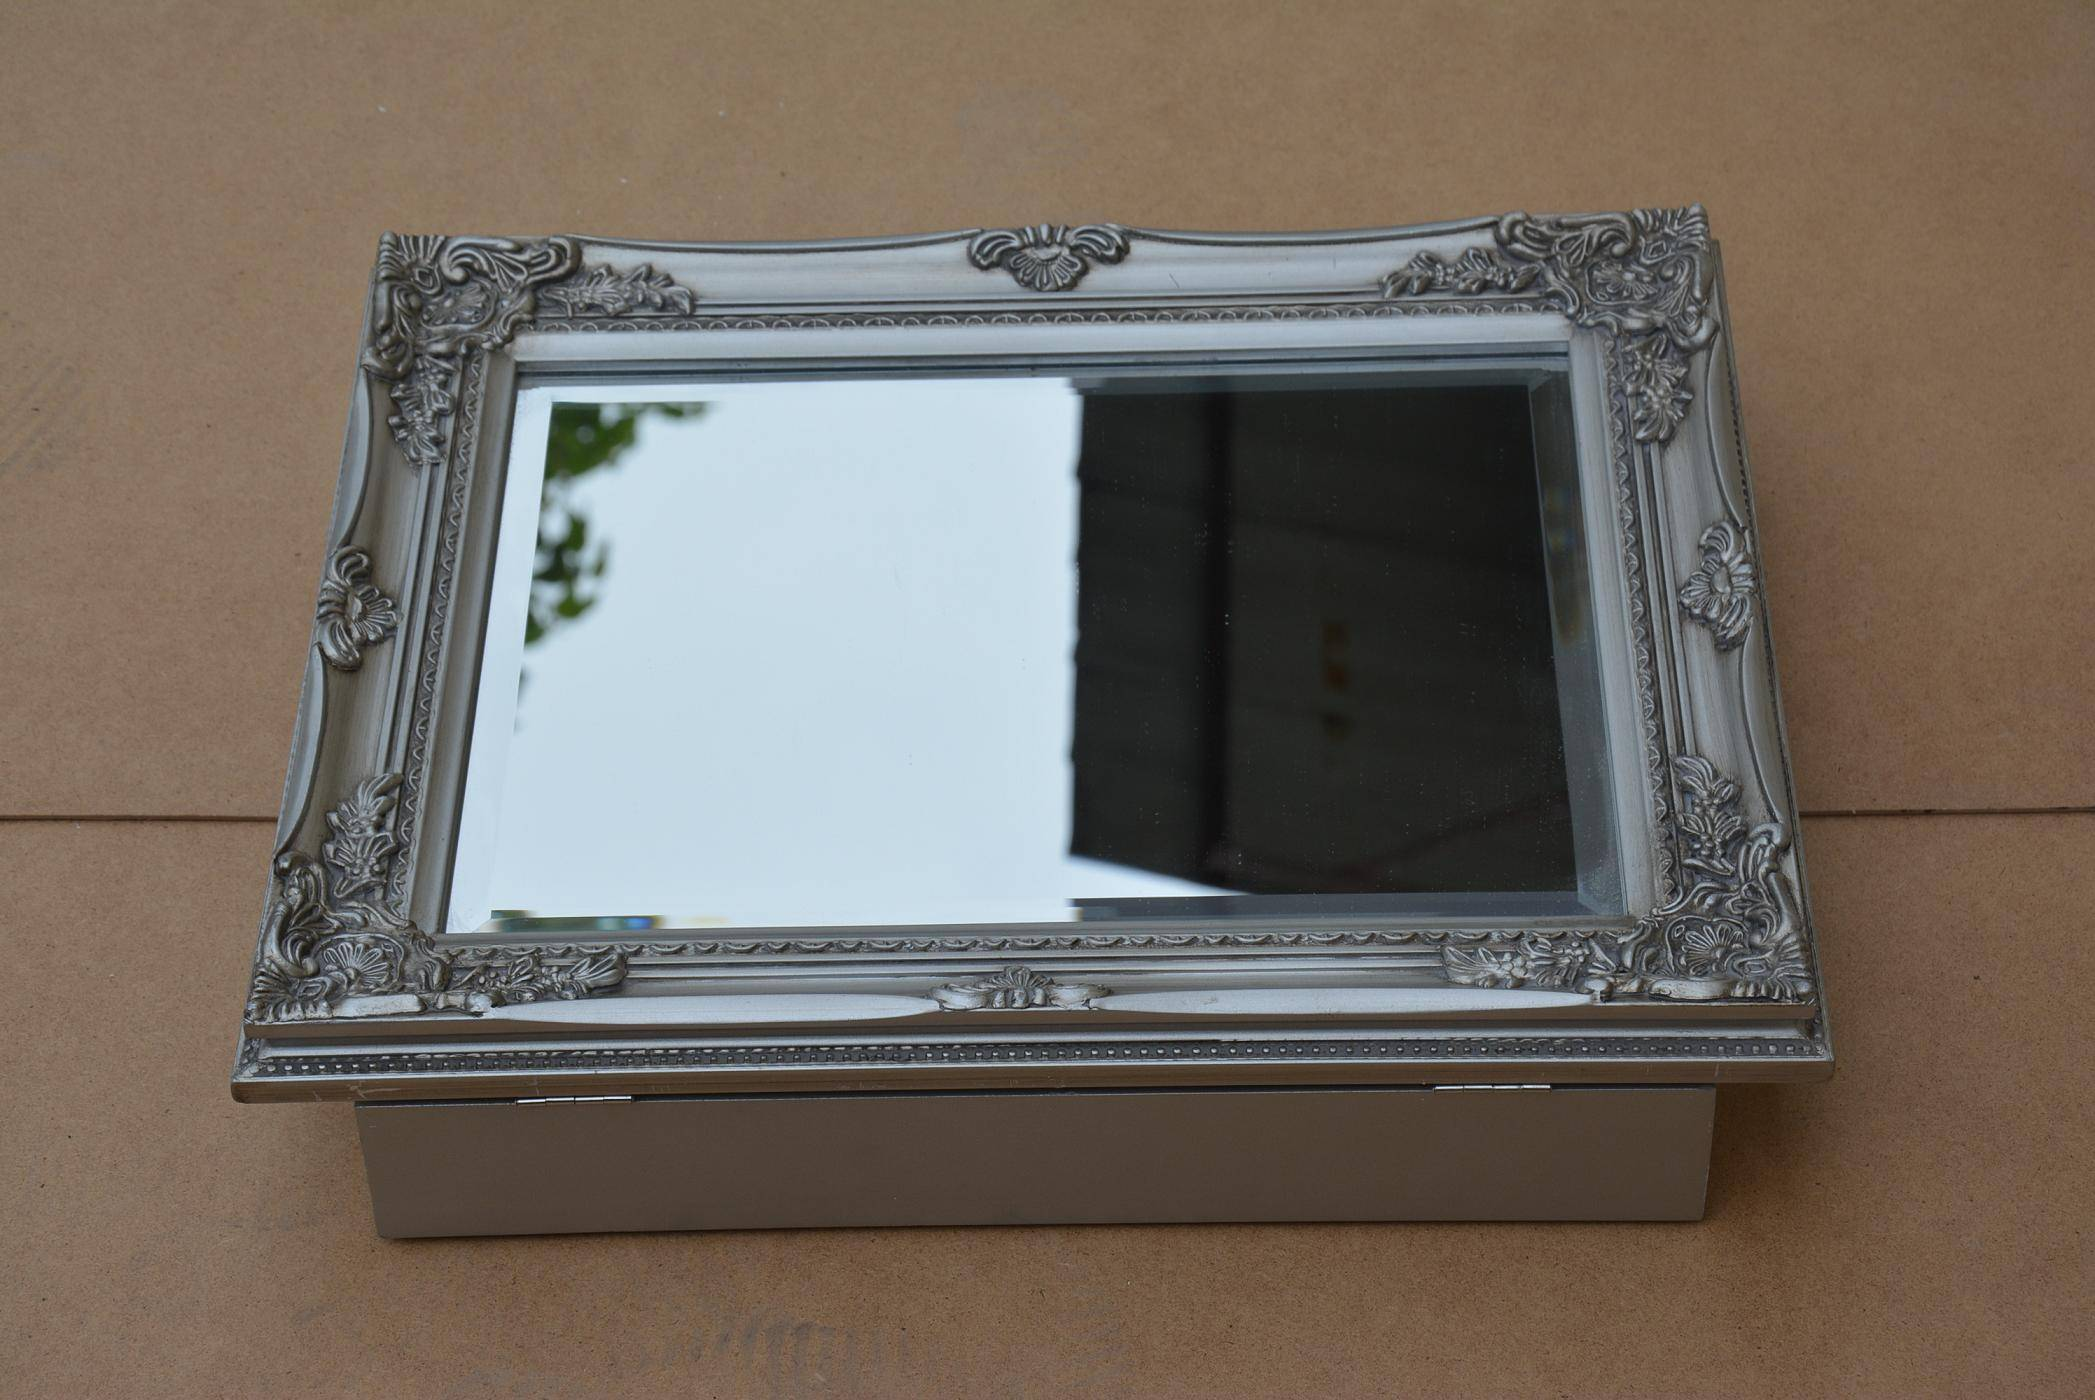 wooden frame box,cosmetic frame mirror box